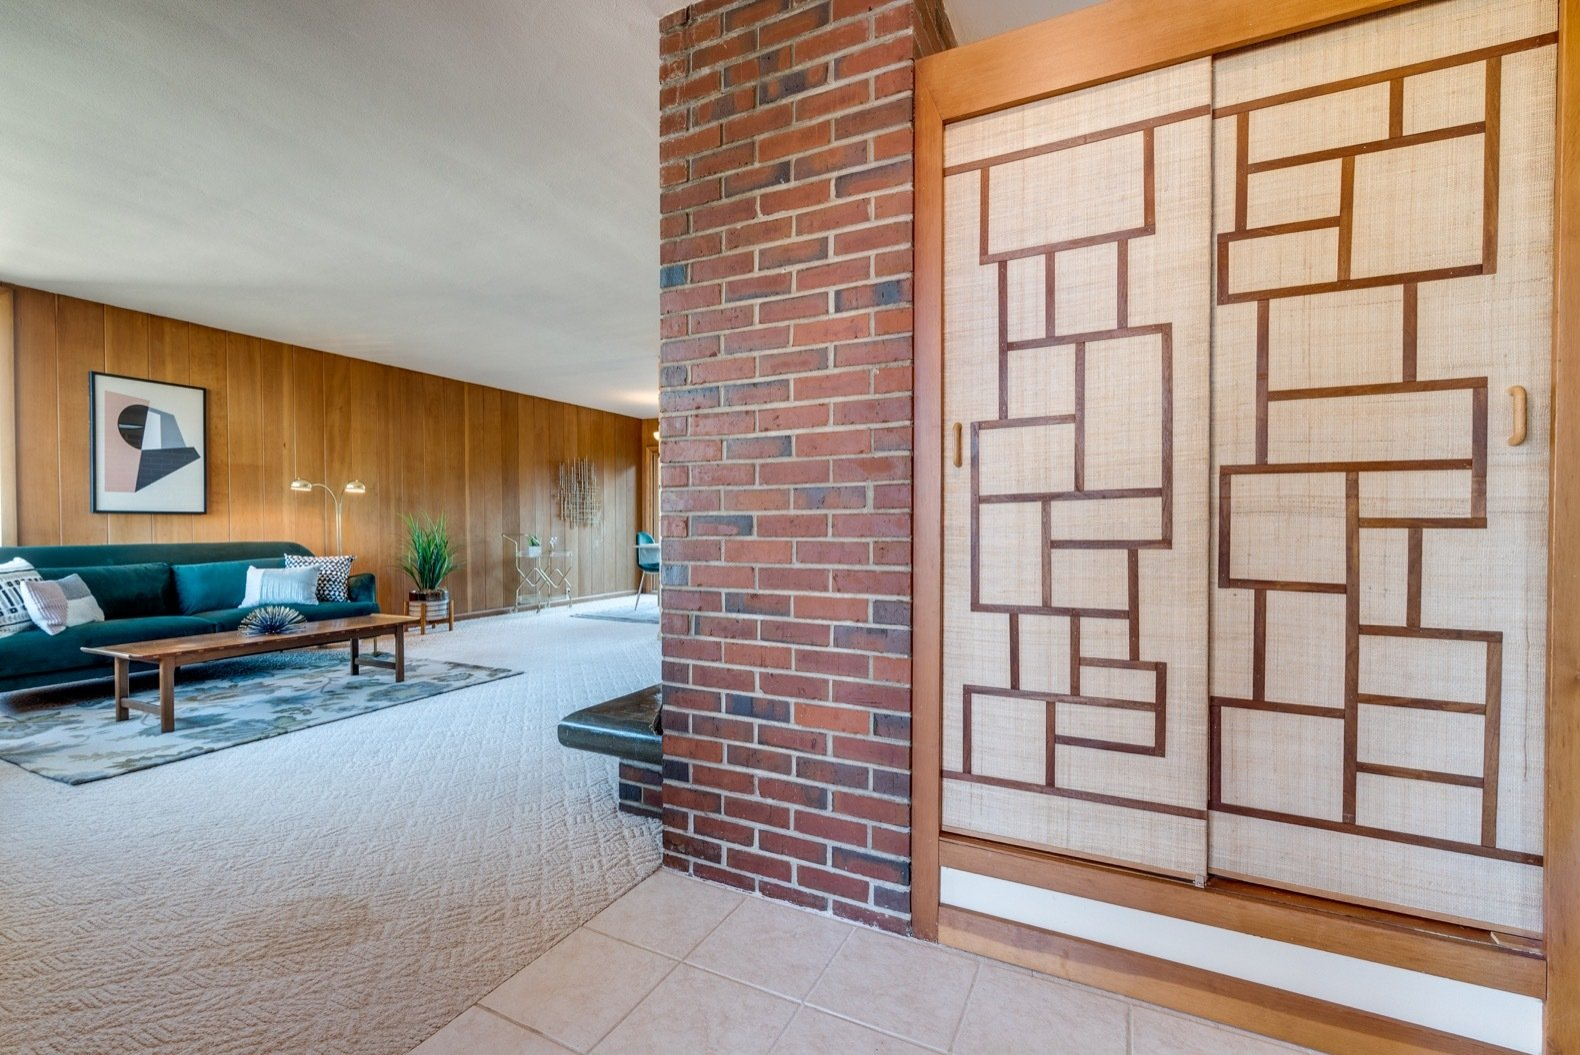 A Frank Lloyd Wright-Inspired Midcentury Home Hits the Market For $595K